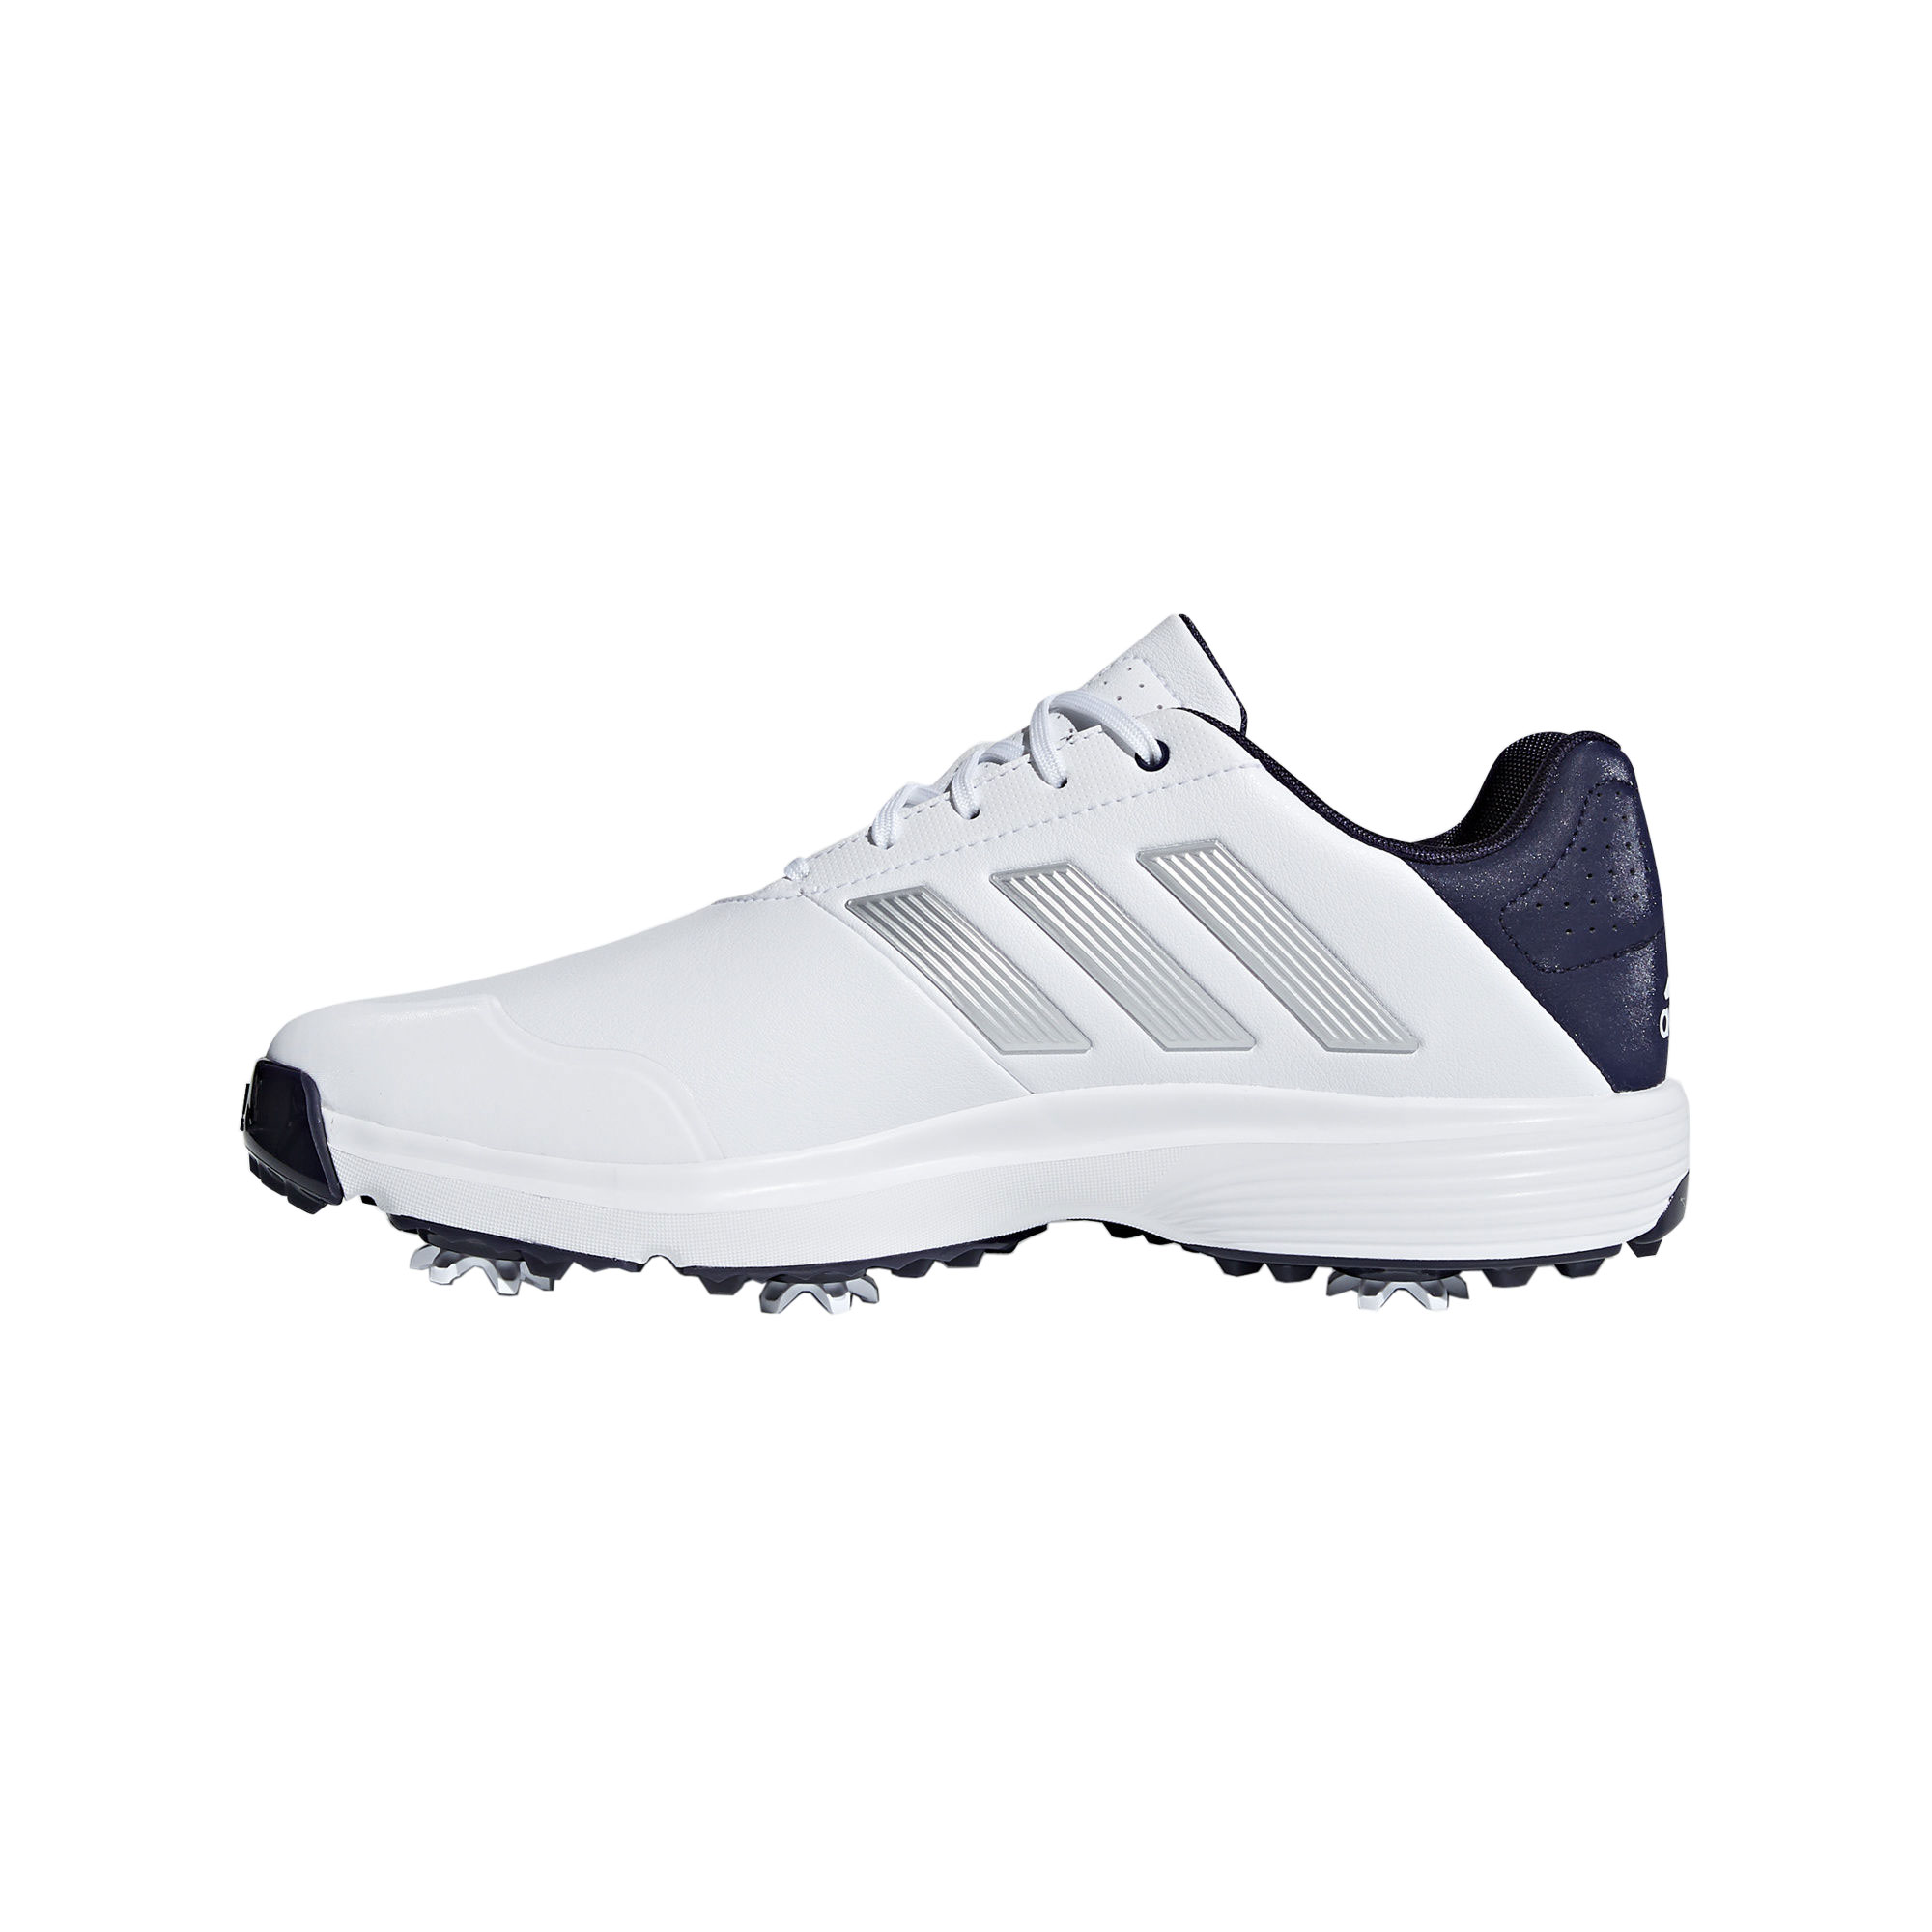 on sale f59df 3eebf Adidas Adipower Bounce S8 Adidas Adipower Bounce S8 ...